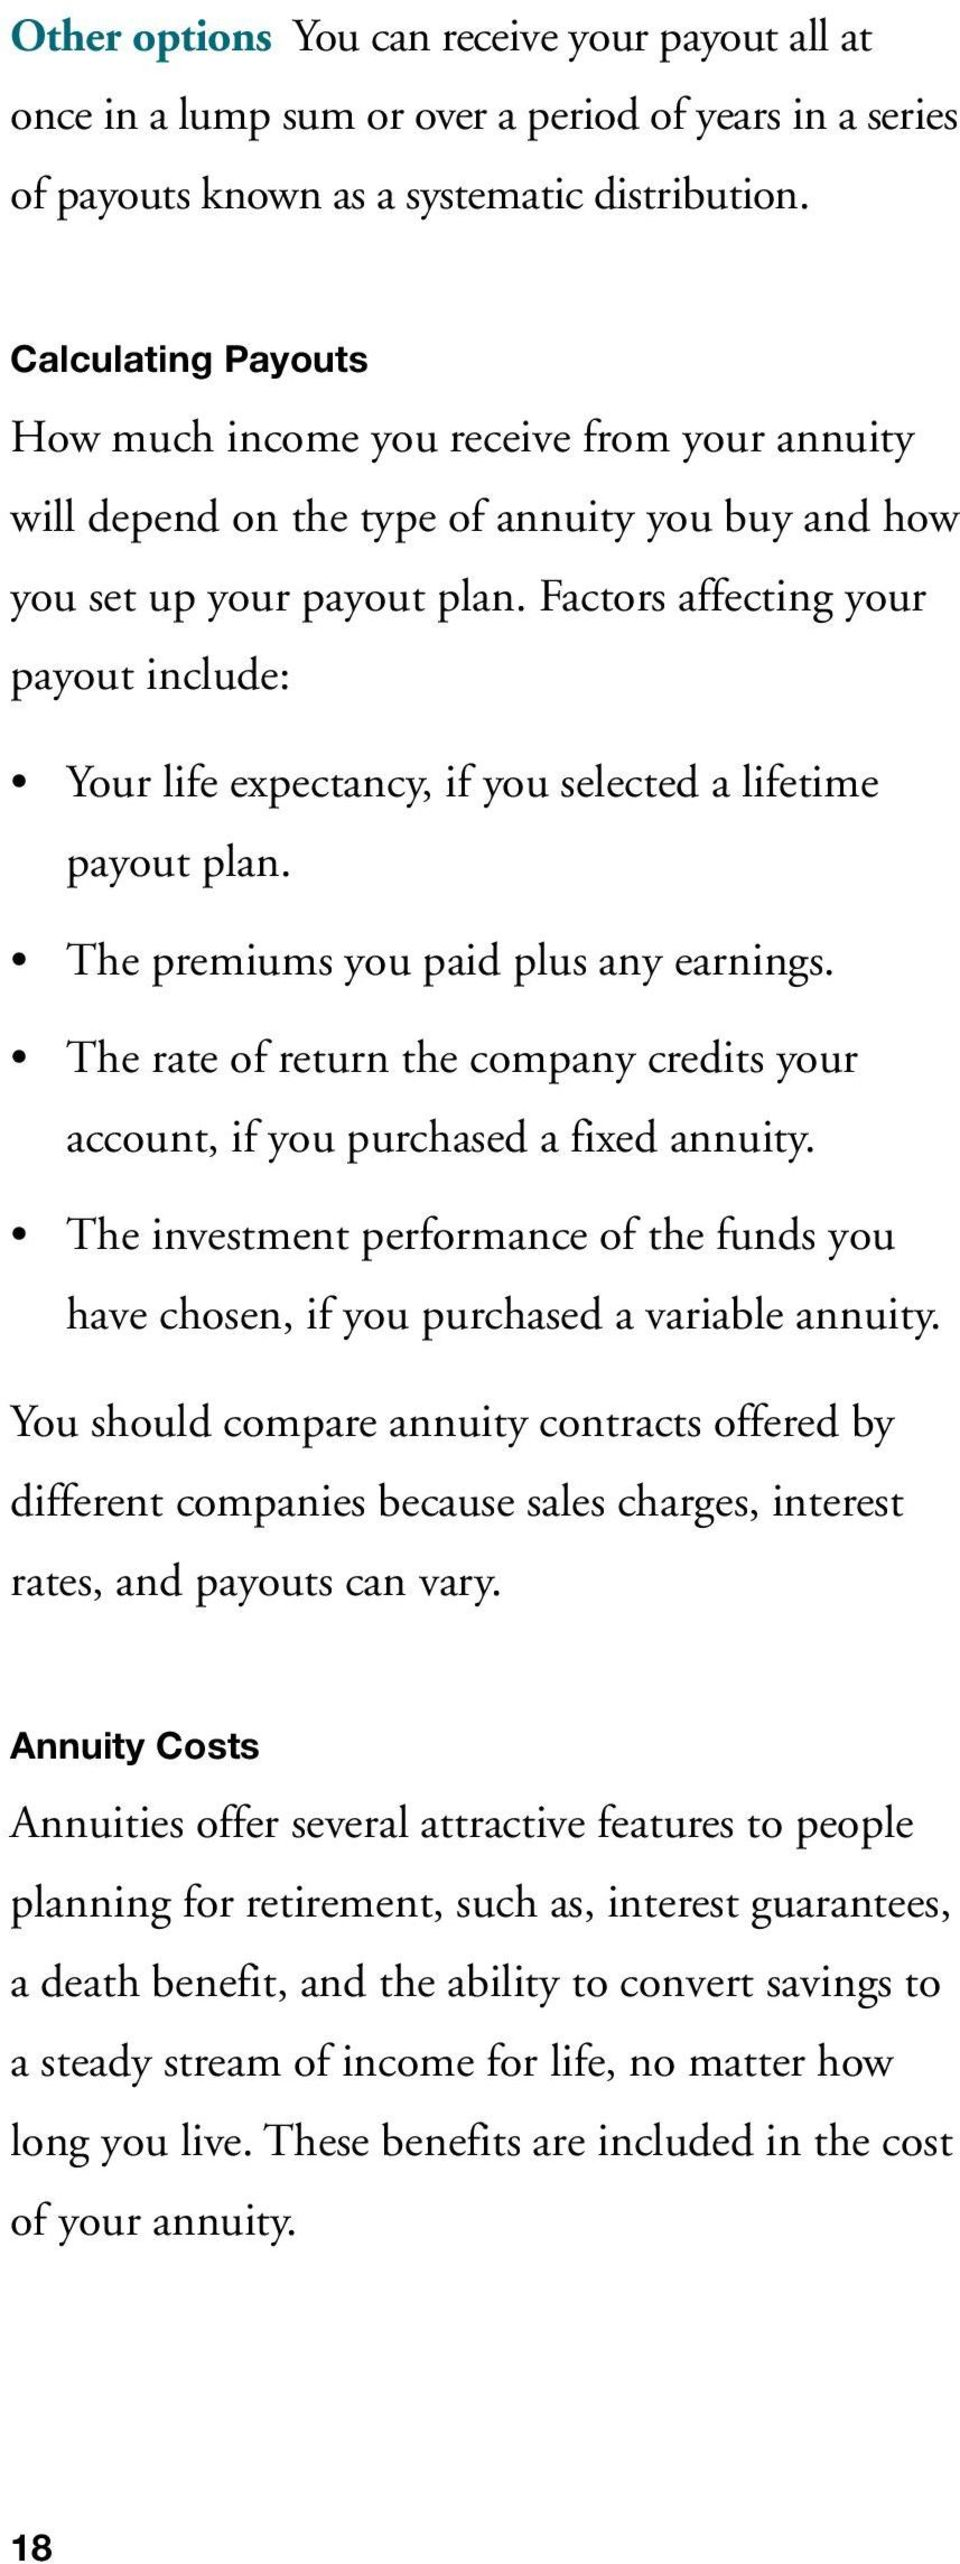 Factors affecting your payout include: Your life expectancy, if you selected a lifetime payout plan. The premiums you paid plus any earnings.